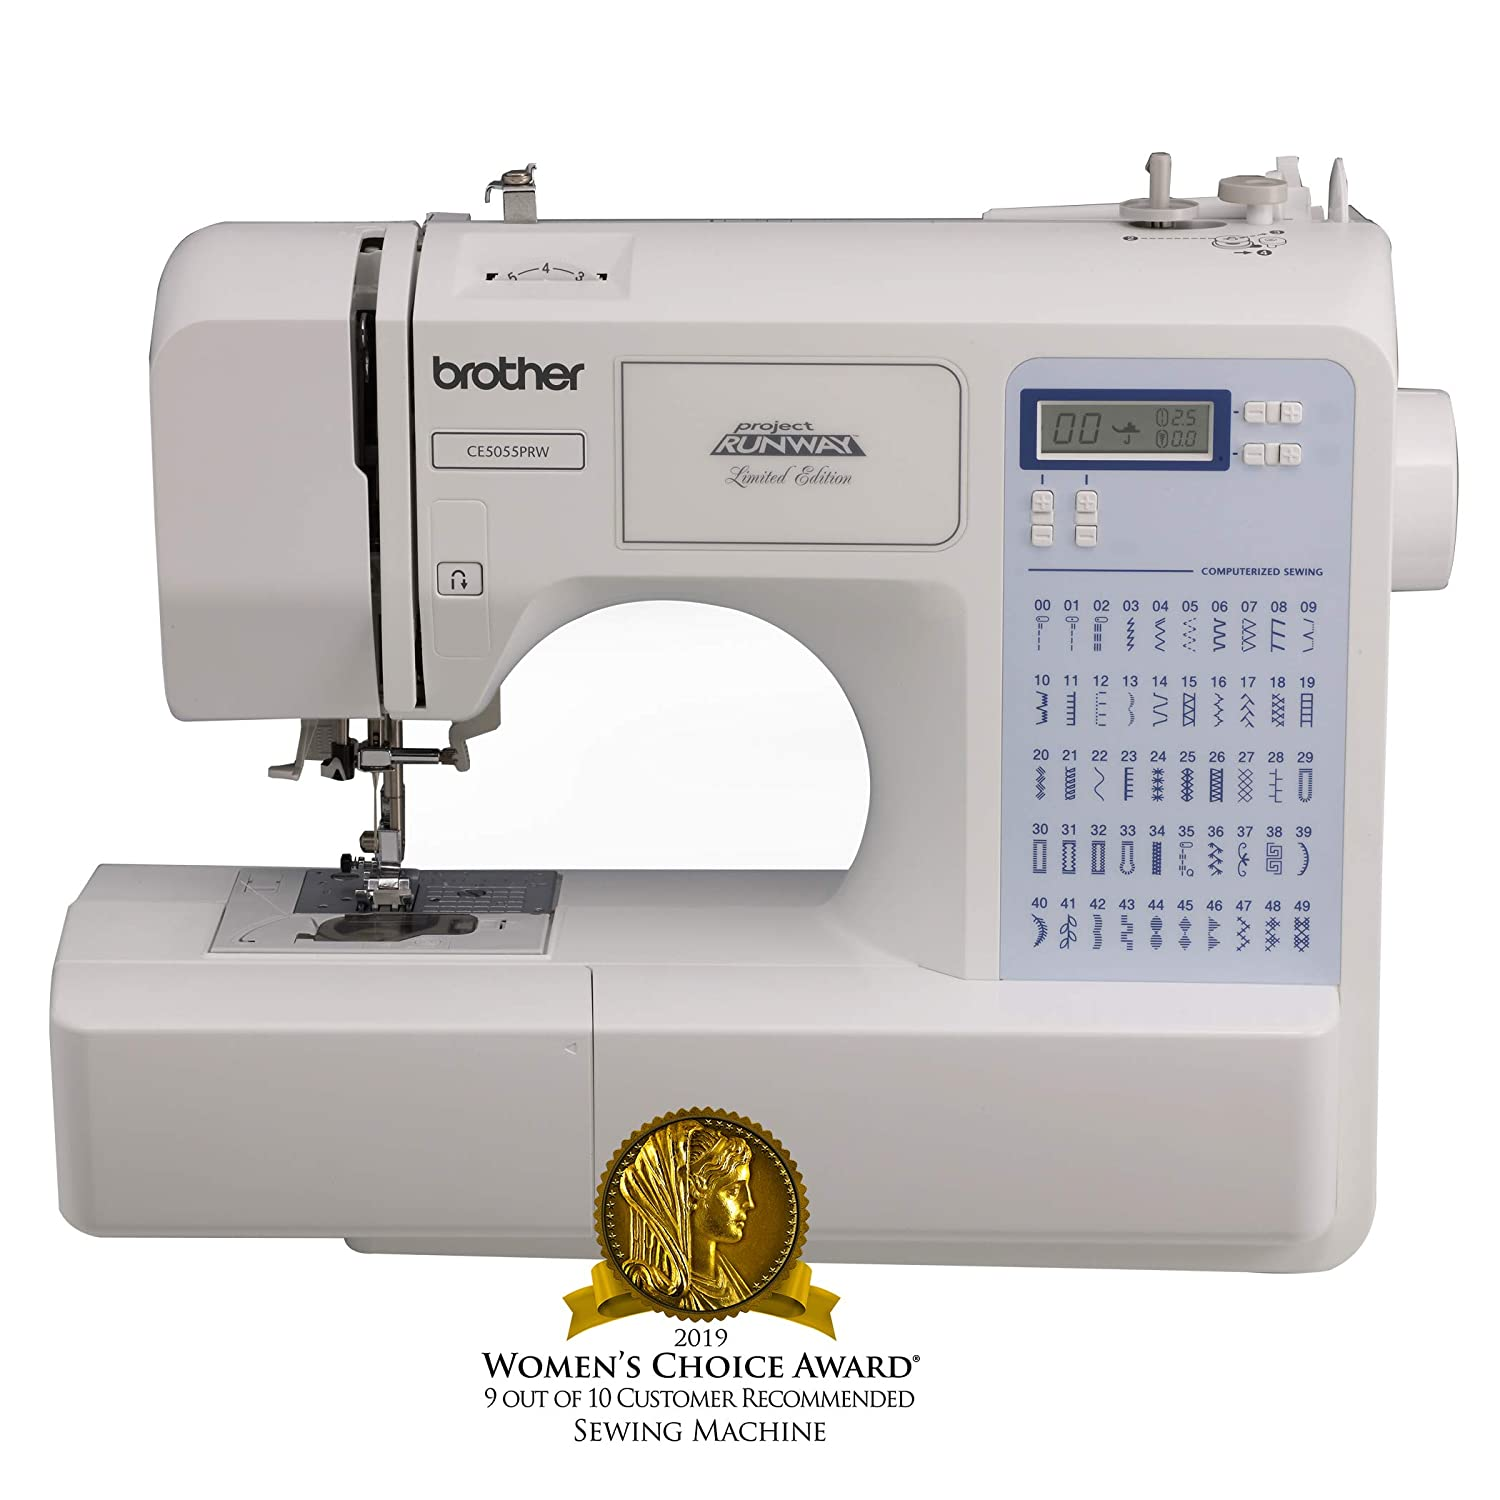 Top 6 Best Sewing Machine For Beginners Reviews in 2020 6